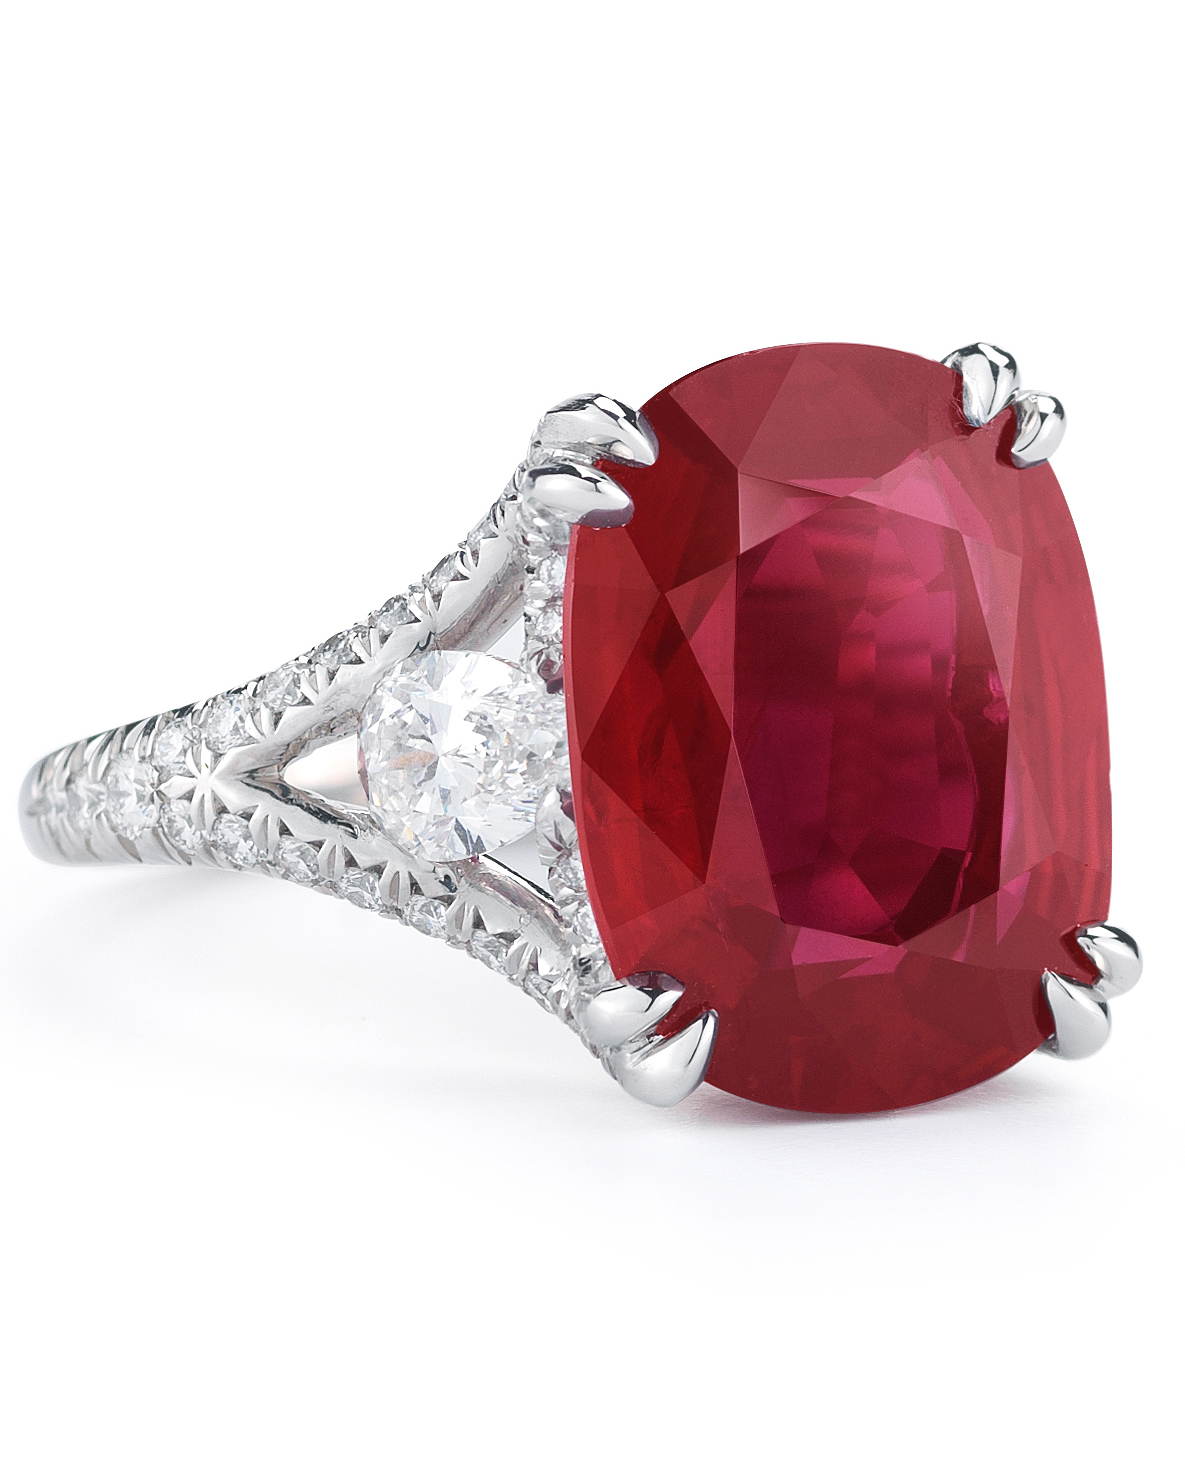 mcteigue-mclelland-ruby-engagement-ring-cushion-cut-side-diamonds-0816.jpg